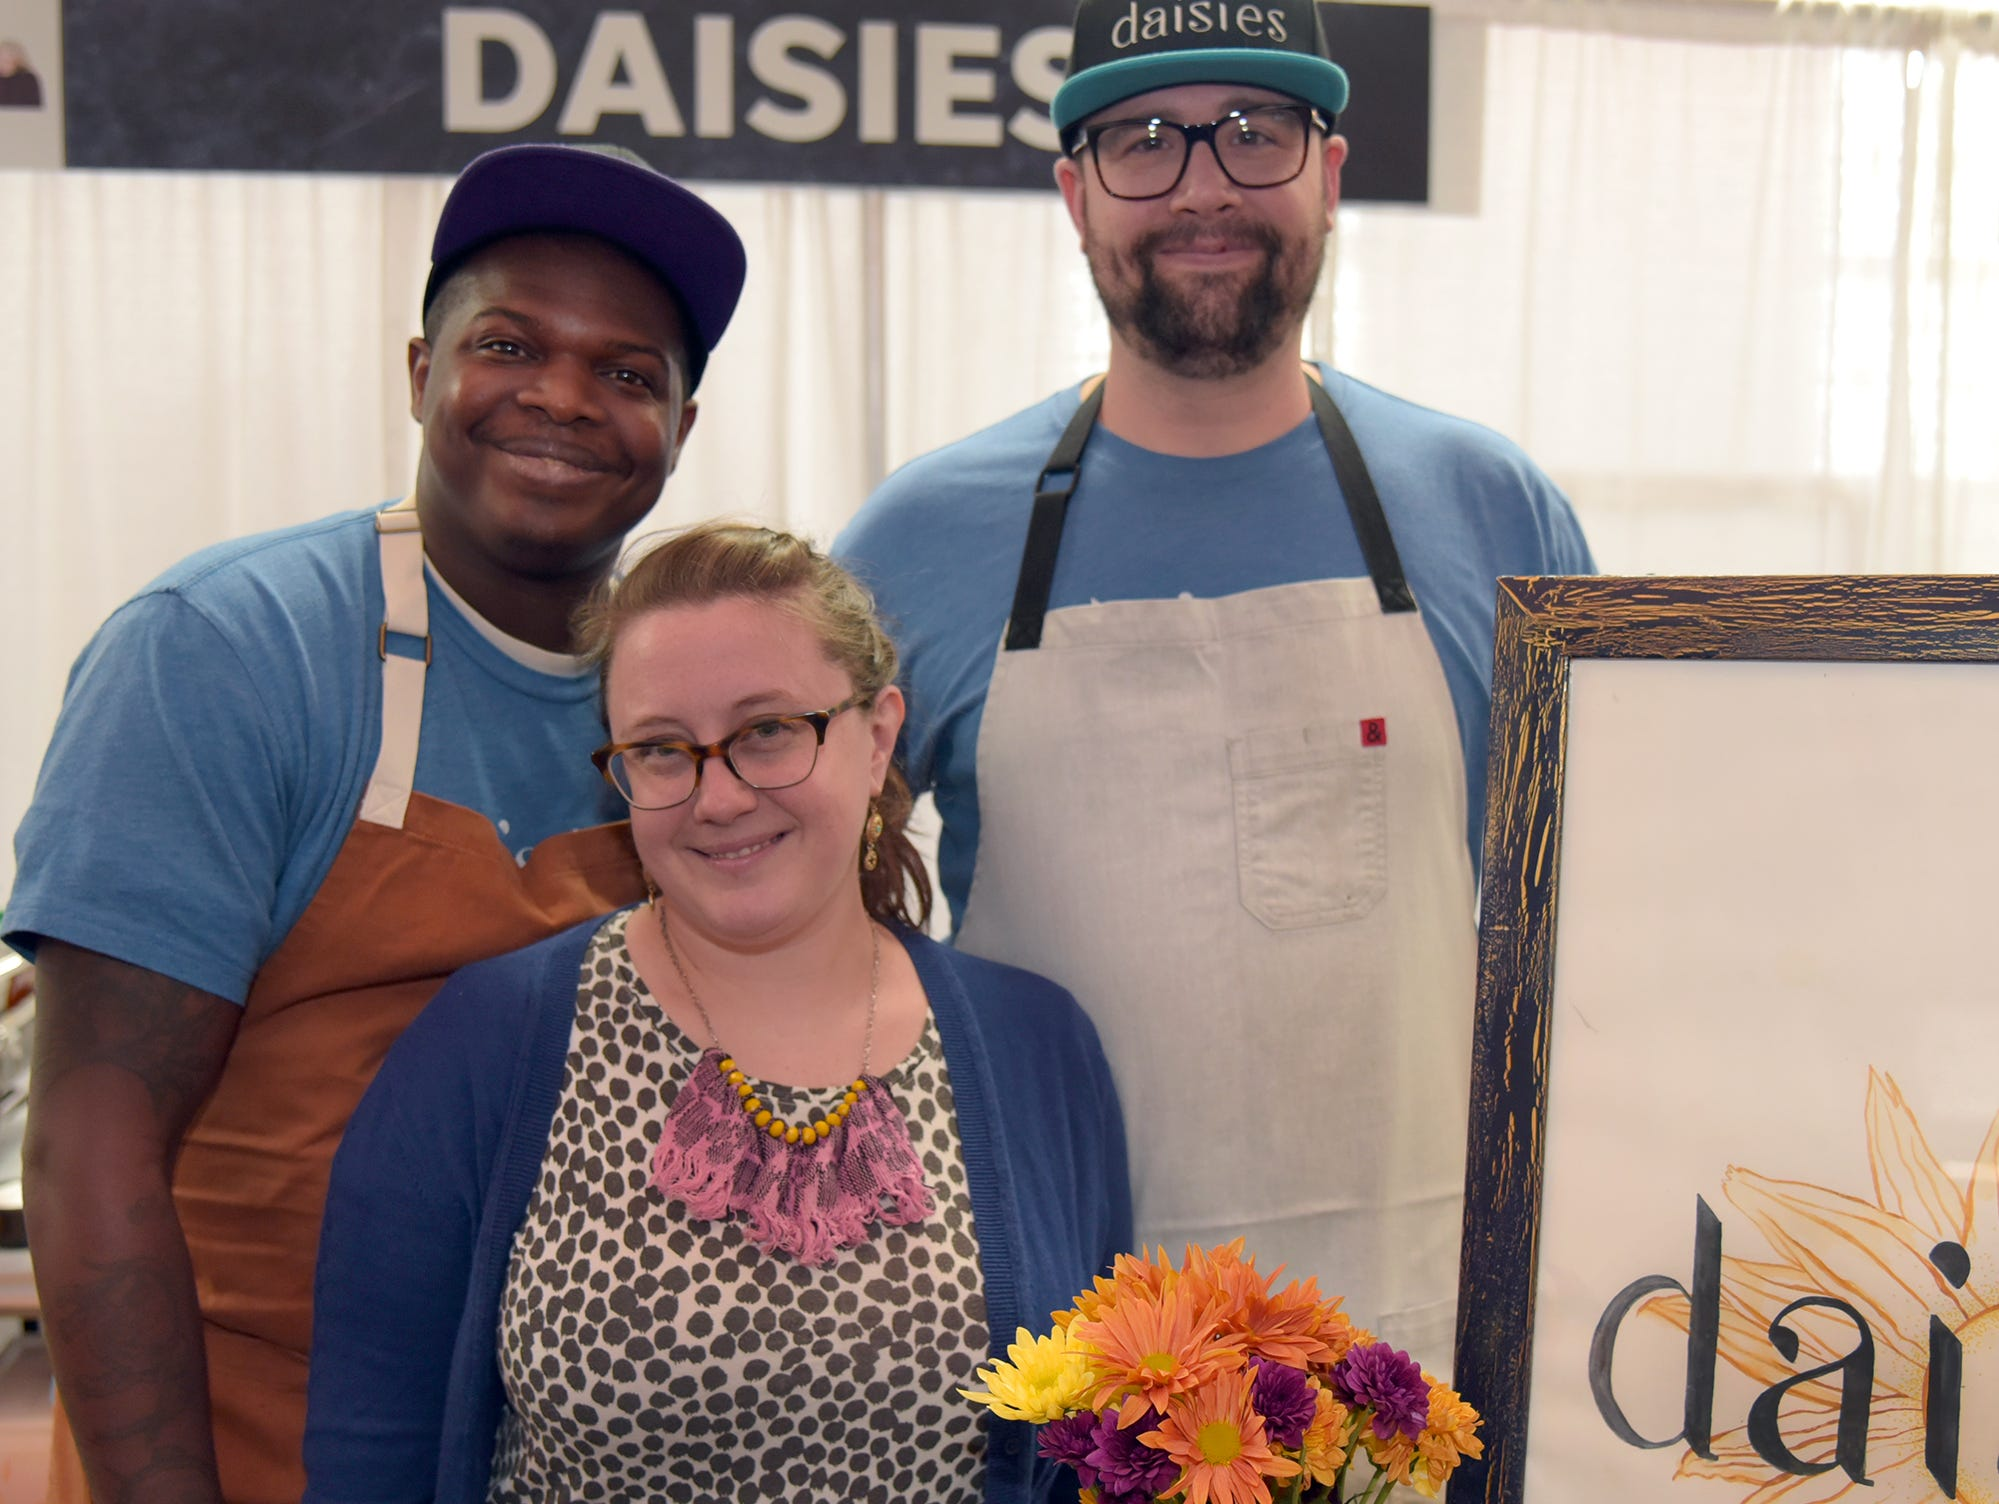 Chef/owner Joe Frillman (right) of Daisies, a small indie eatery in the hot culinary neighborhood of Logan Square, jumped at the opportunity to participate in the Wine & Food Experience Chicago.